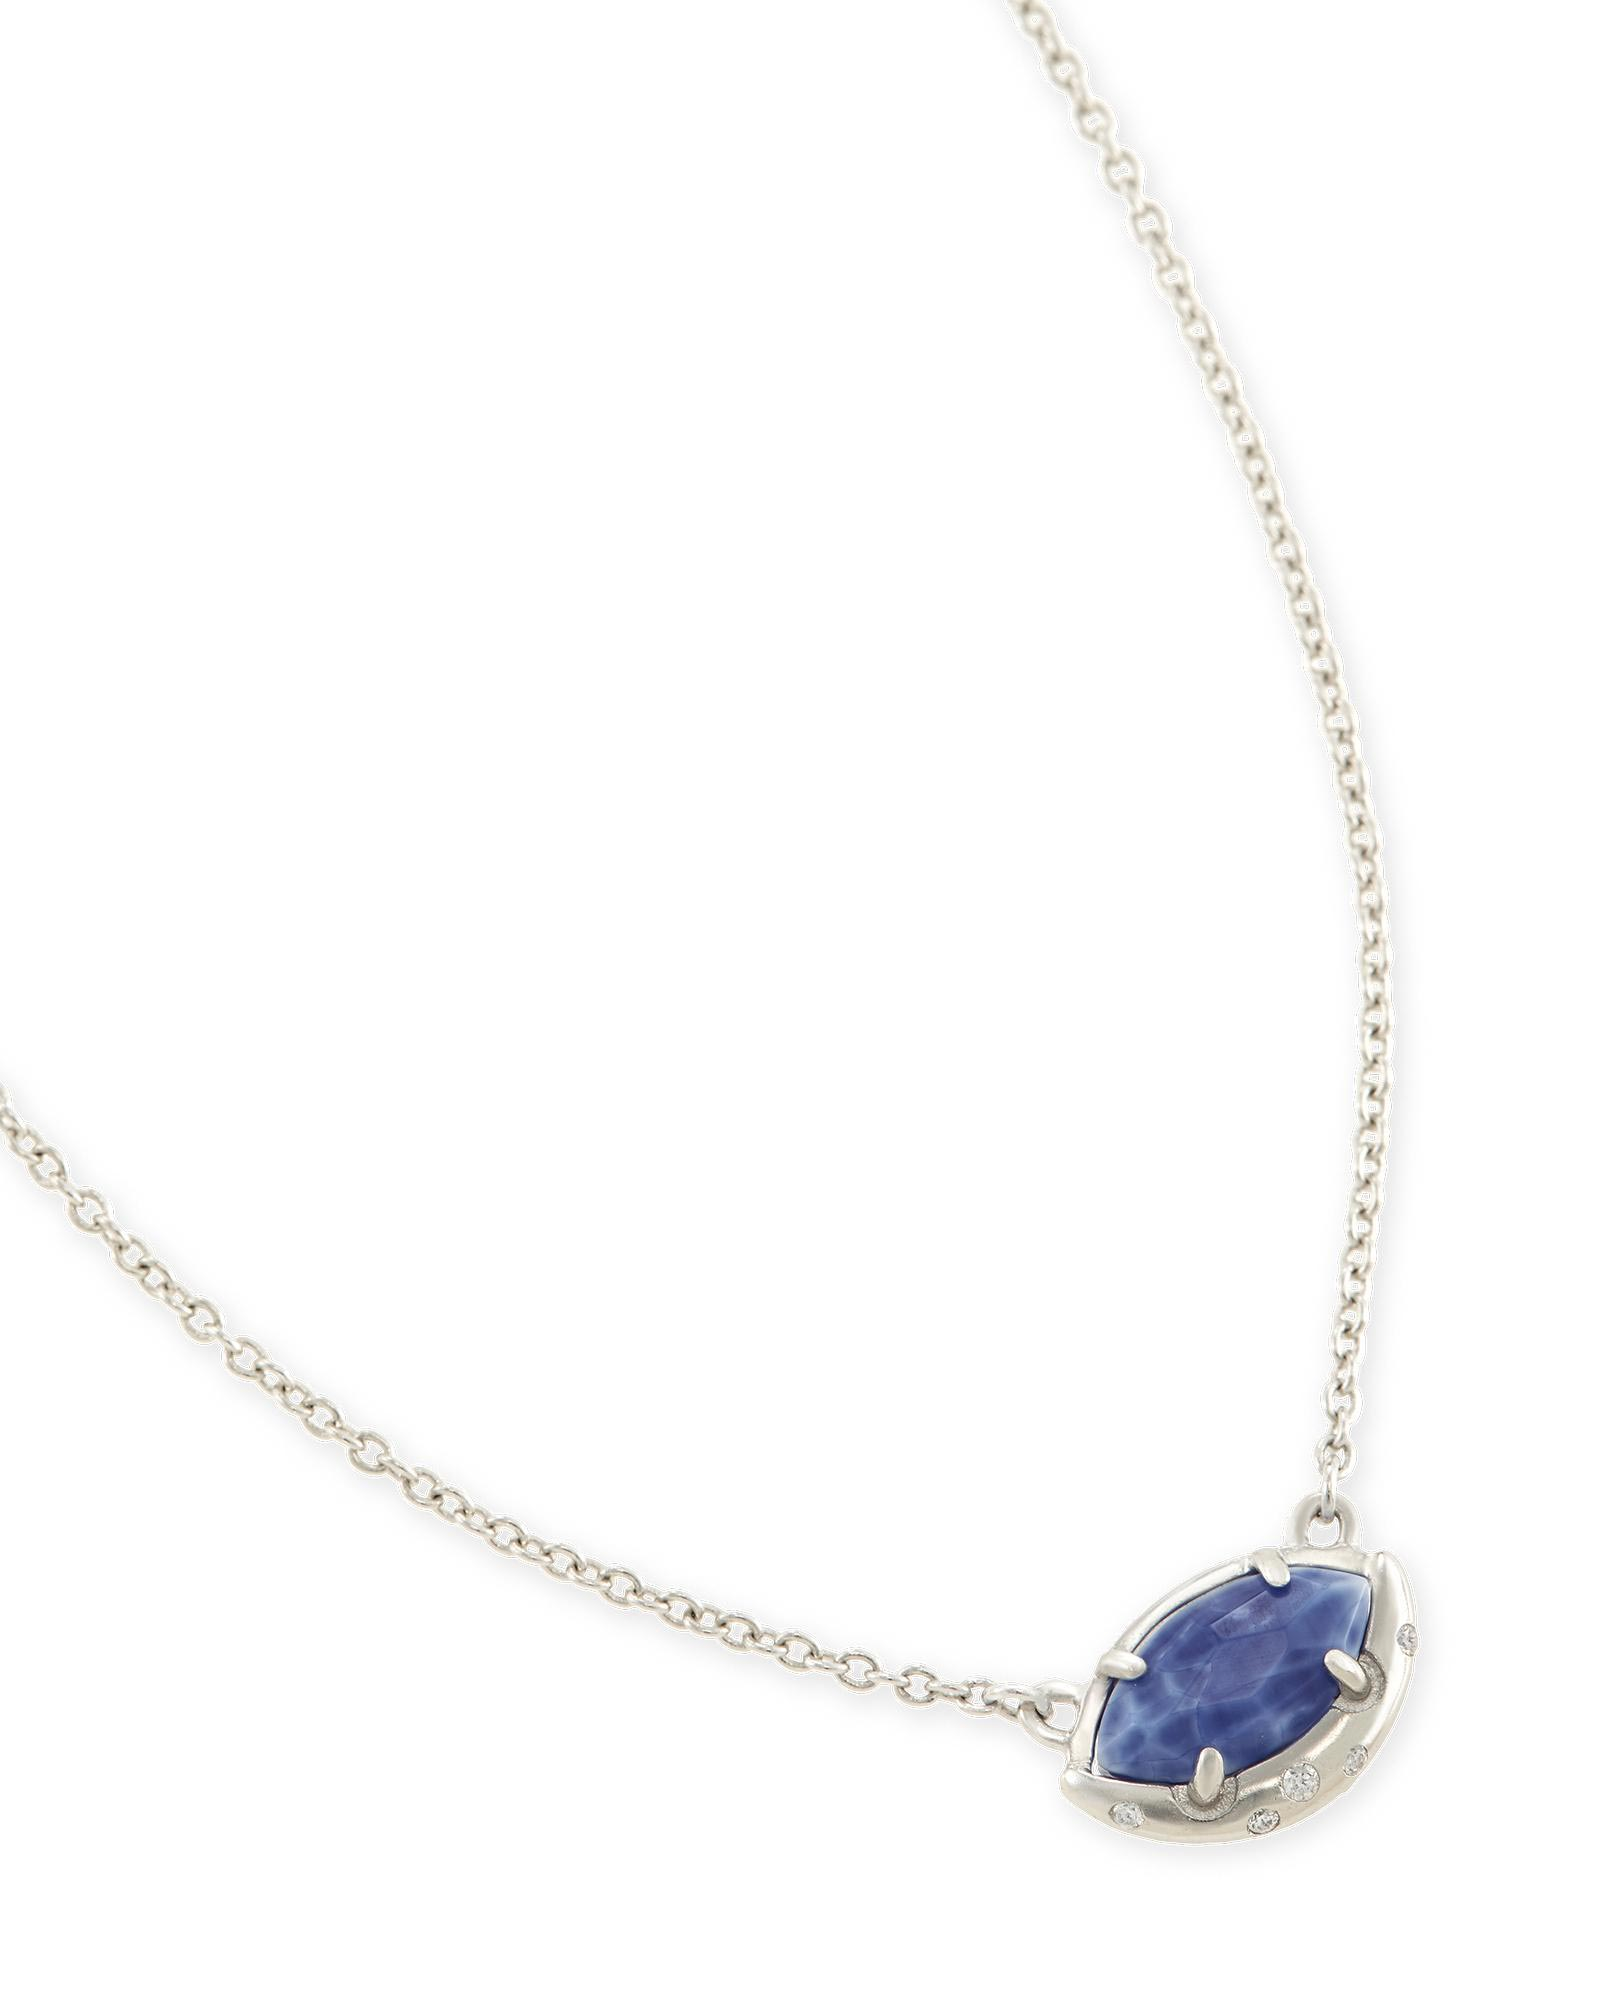 Mikka Pendant Necklace in Crackle Blue Agate